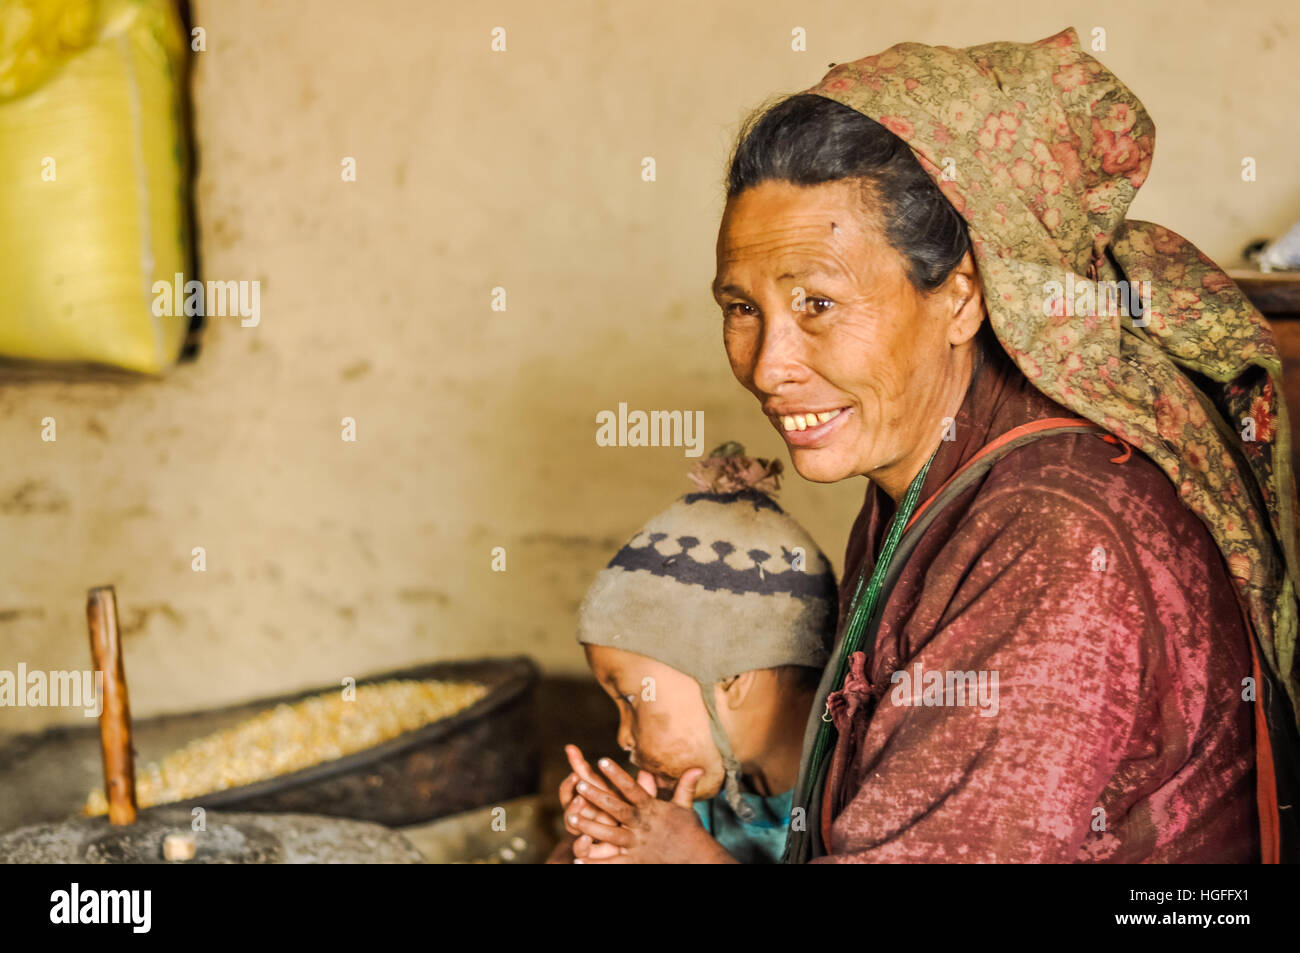 Dolpo, Nepal - circa May 2012: Native black-haired woman with large headcloth in purple clothes holds child and - Stock Image